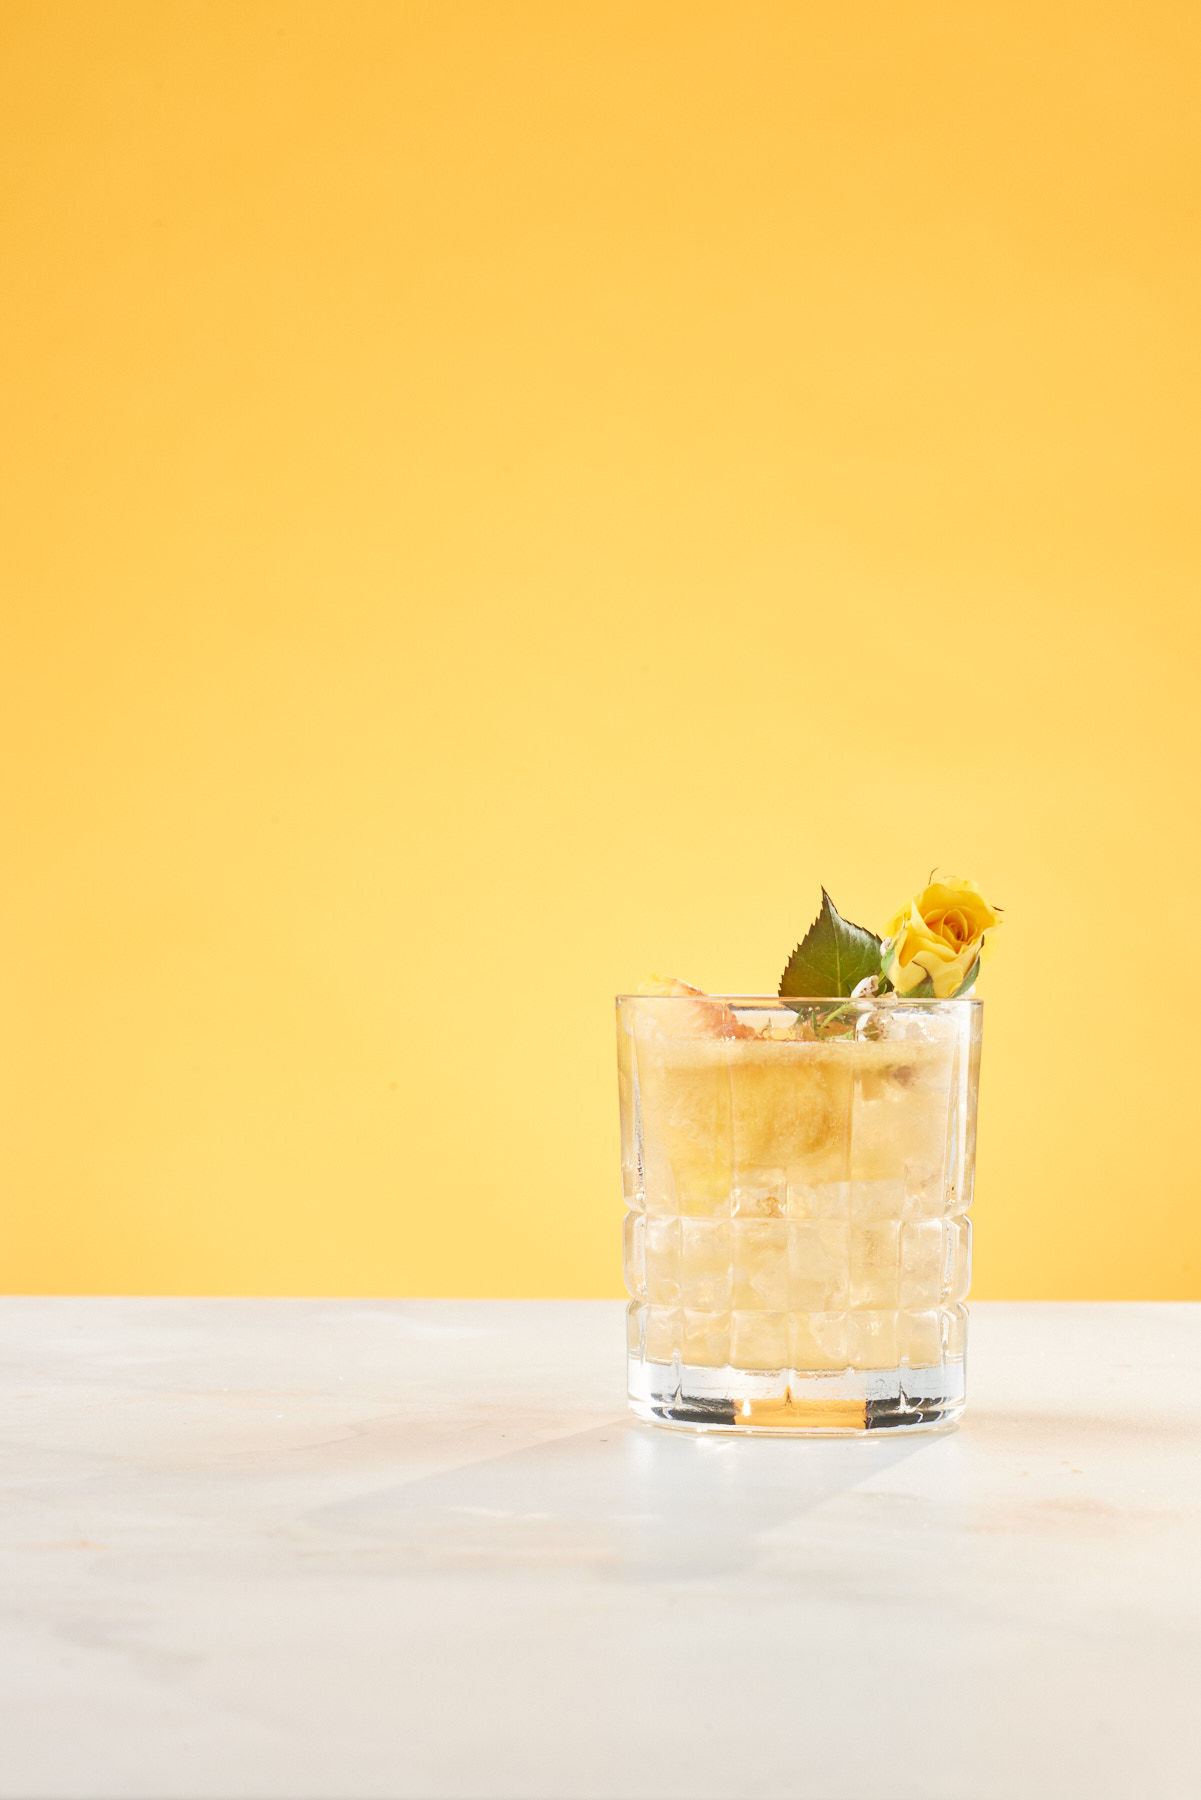 bartender_magazine_spring_feature_peach_smash_cocktail_commercial_beverage_photography